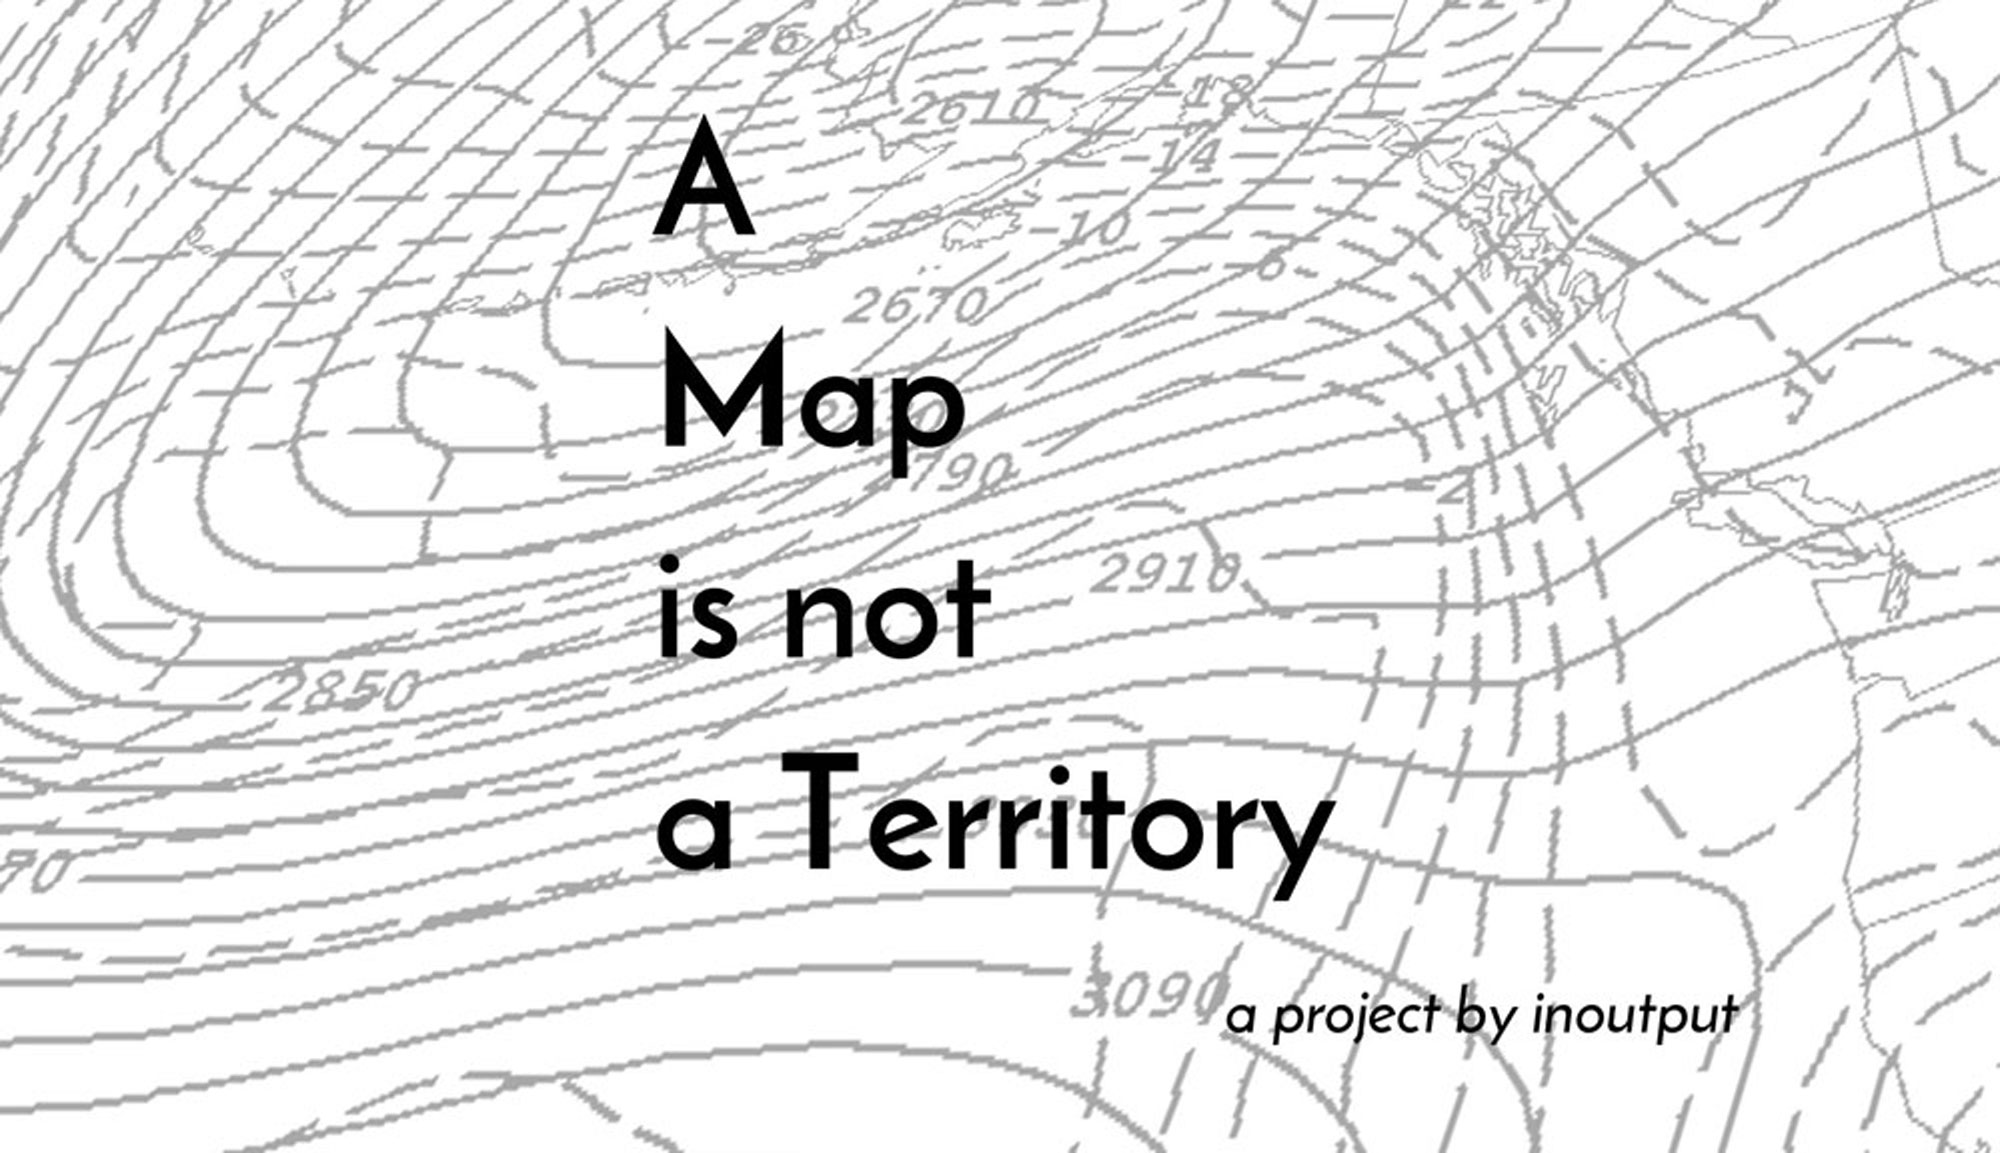 A map is not a territory